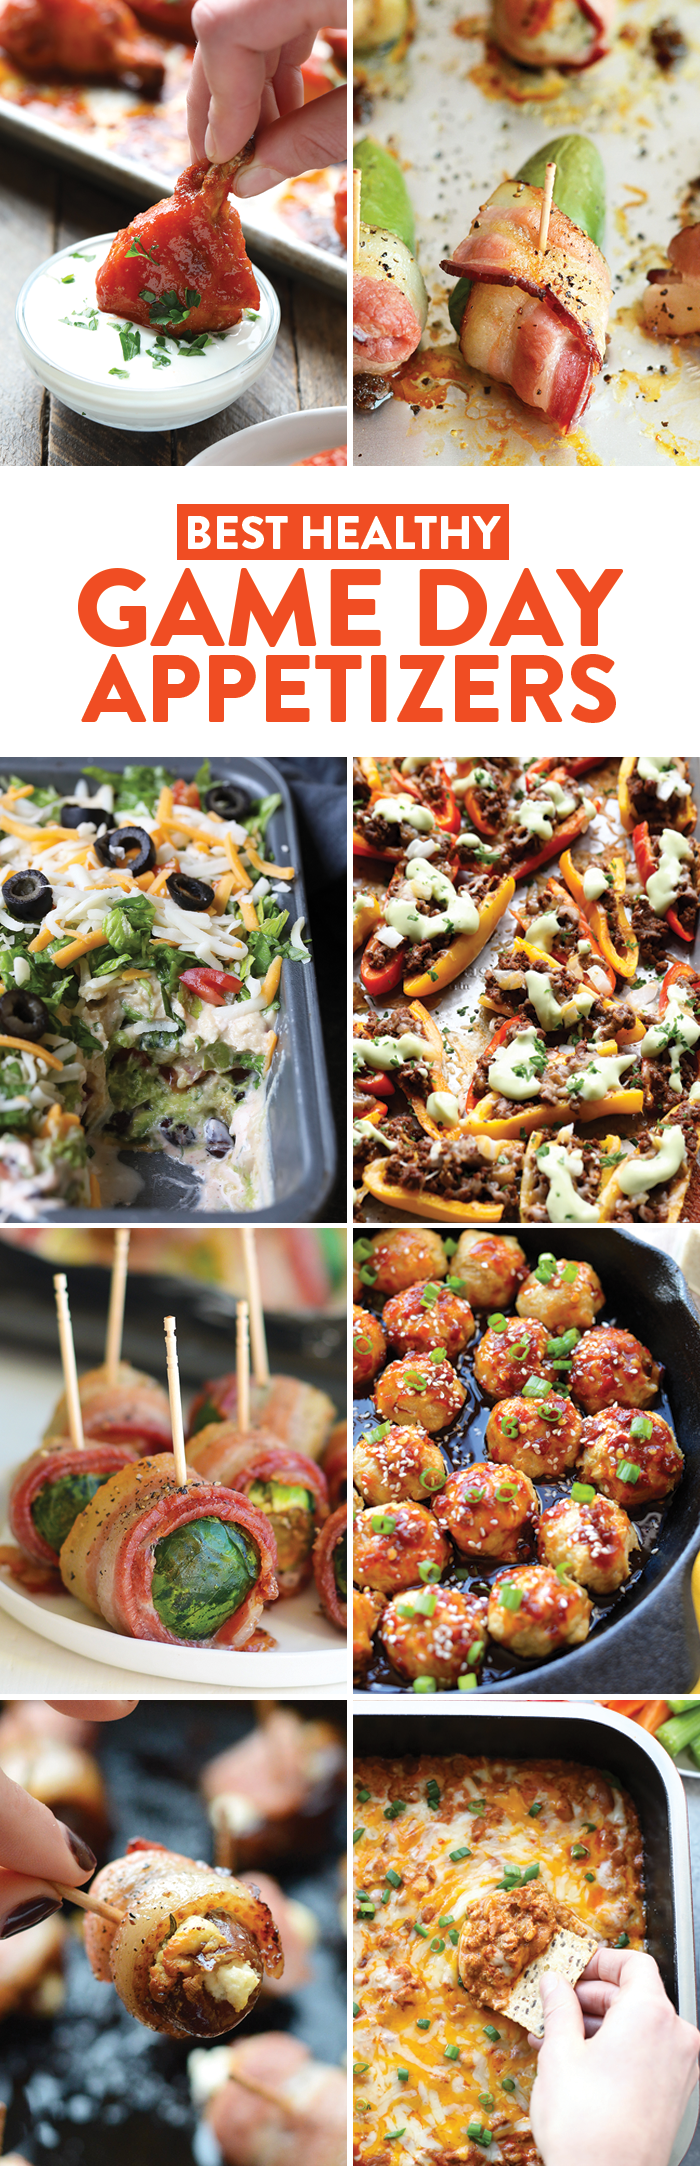 Game Day Appetizers that are healthy! - Fit Foodie Finds